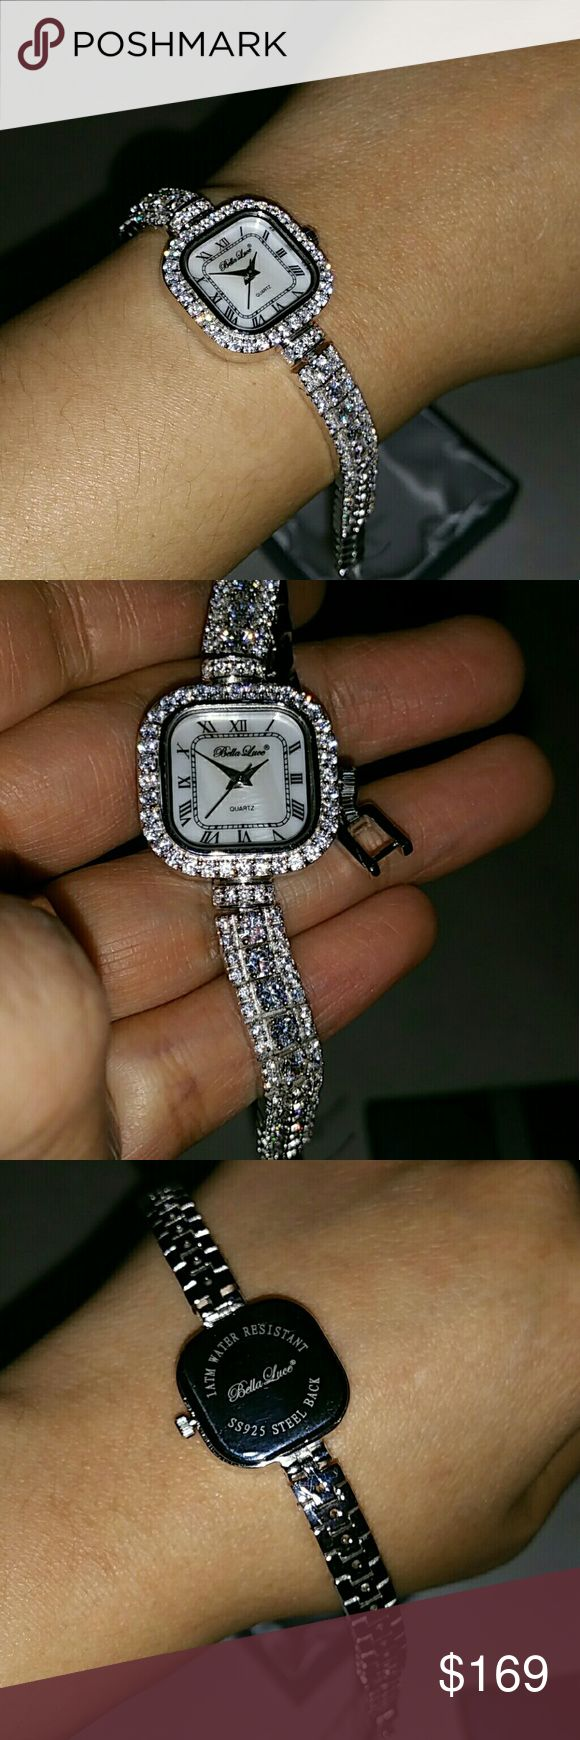 """BELLA LUCE 10.70 CTW ROUND WHITE DIAMOND SIMULANT. Bella Luce? Ladies 10.70ctw Round Sterling Silver Watch  JTV Price: $179.99    Bella Luce? Ladies, White Diamond Simulant 10. 70ctw Round, White Mother Of Pearl Dial, Rhodium Plated Sterling Silver Watch. Measures Approximately 7 & 1/2""""l X 1 & 1/8""""w With A Foldover Clasp Closure. Features A Sterling Silver Case Back, Quartz Movement, A Push/Pull Crown, And Is Water Resistant Up To 3 Atm.  From the Italian words meaning """"beautiful light""""…"""